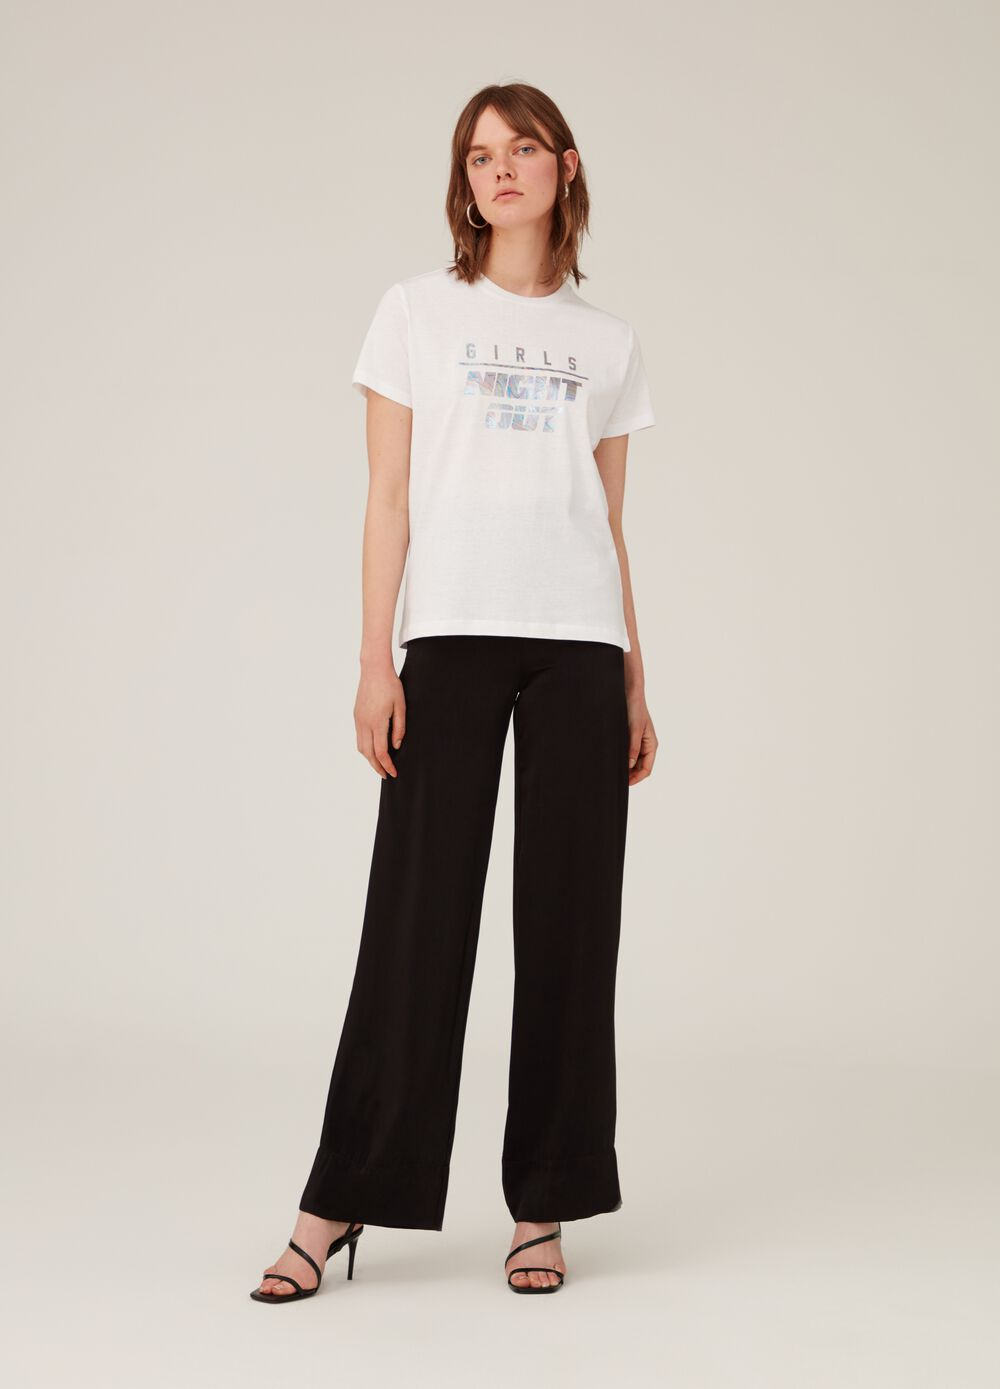 Cotton T-shirt with shiny-effect print